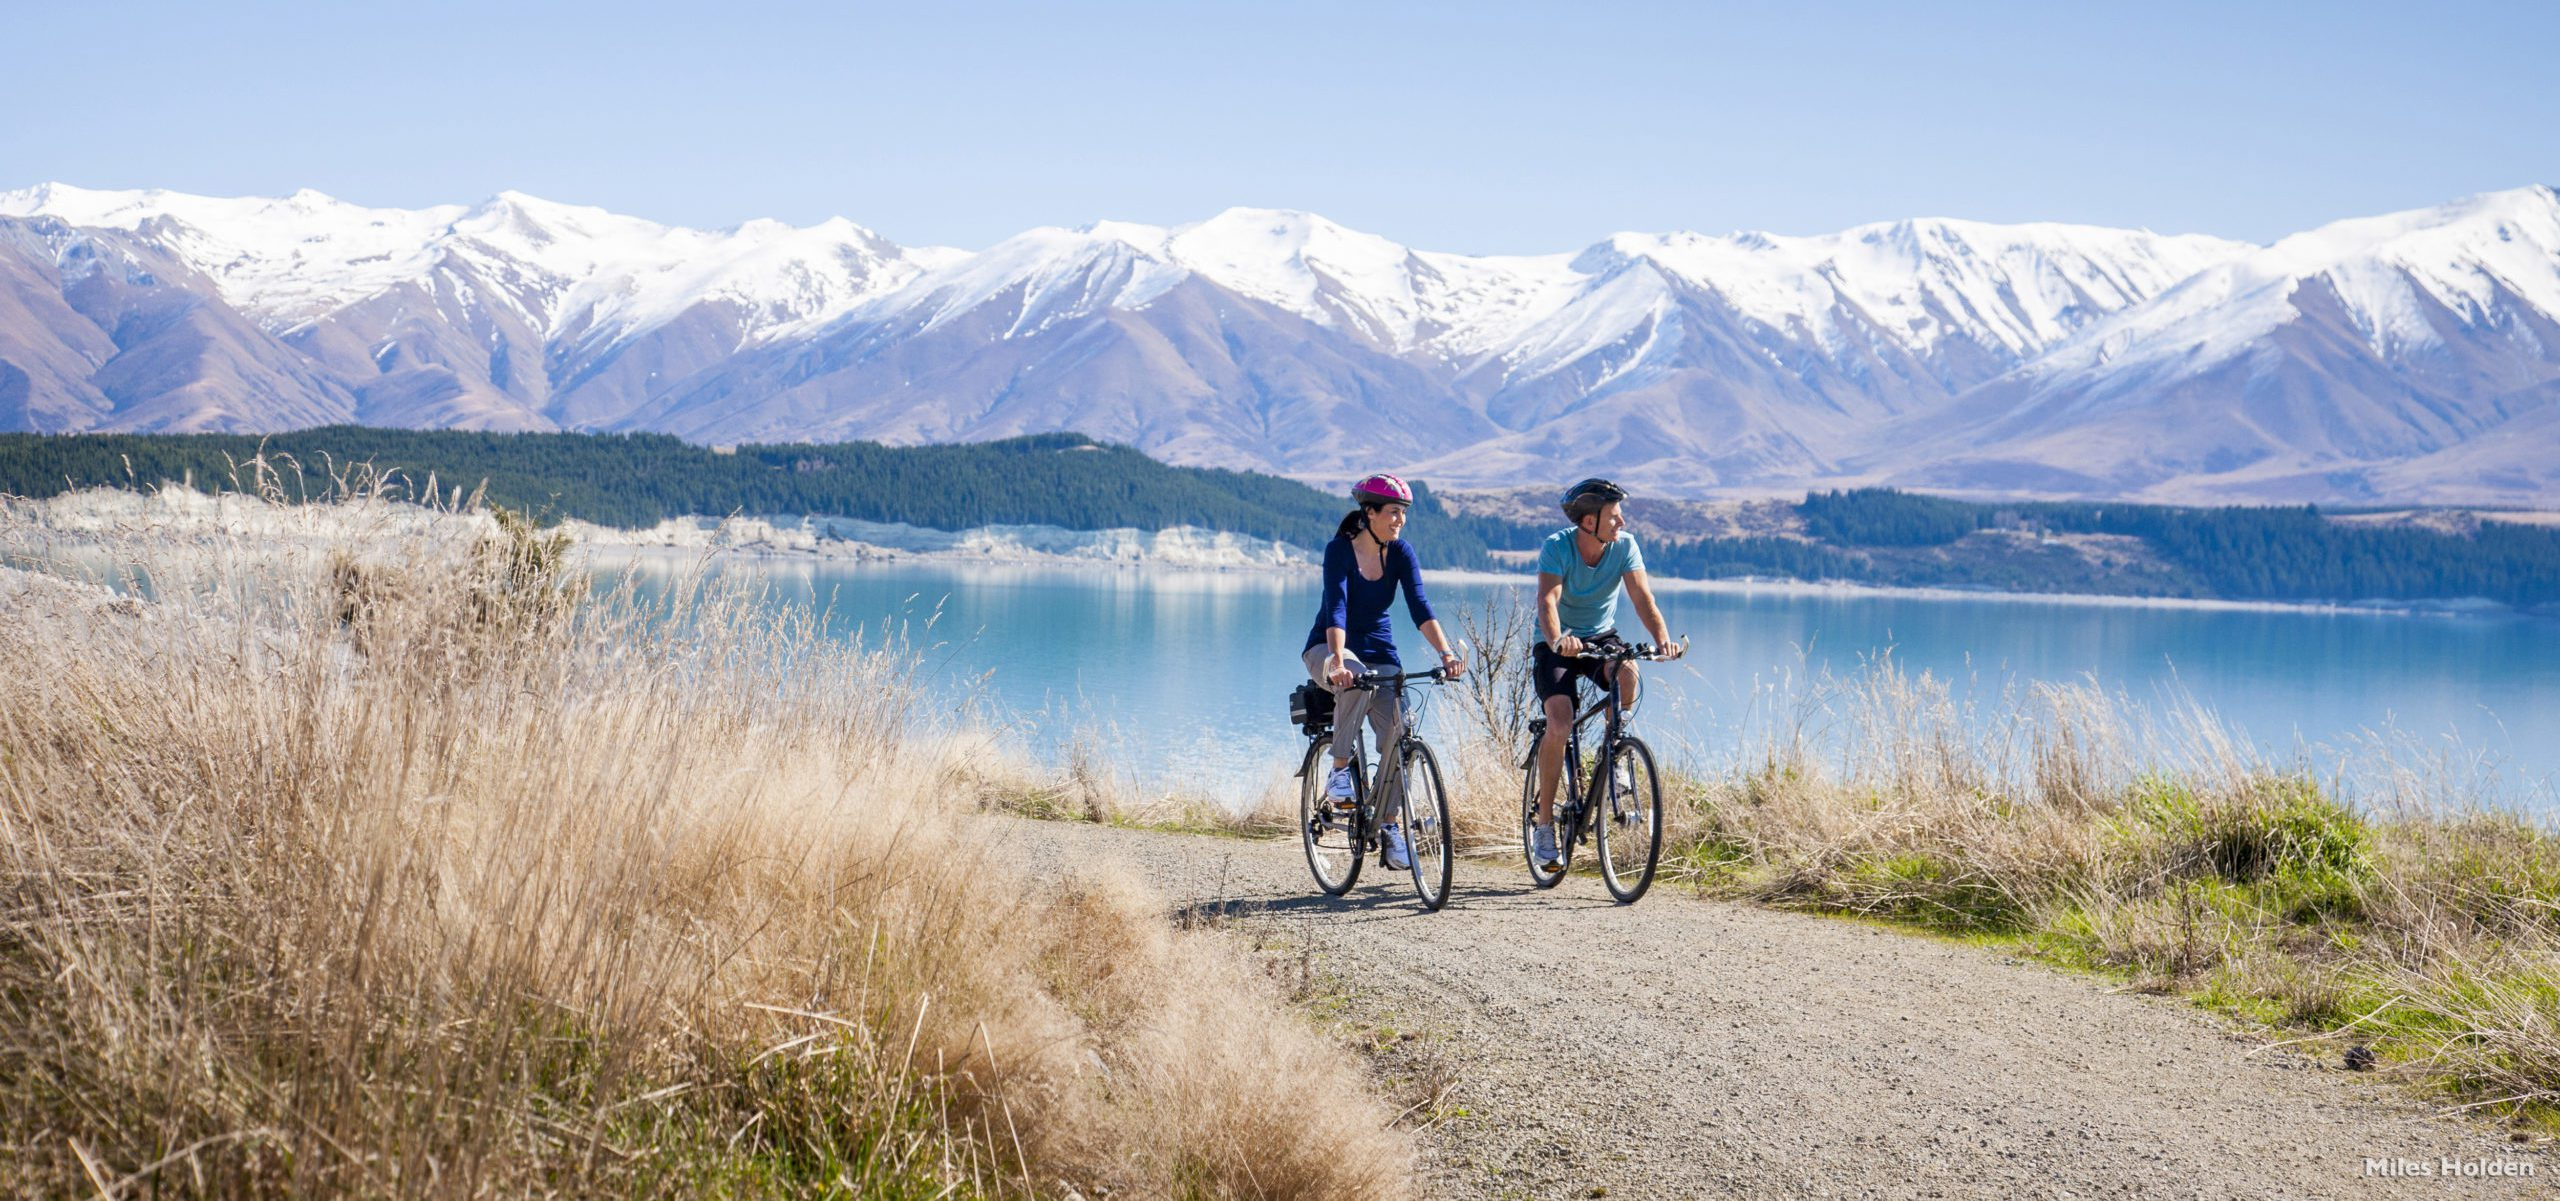 Two cyclists biking along Lake Pukaki with the Southern Alps in the background on New Zealand's South Island tour